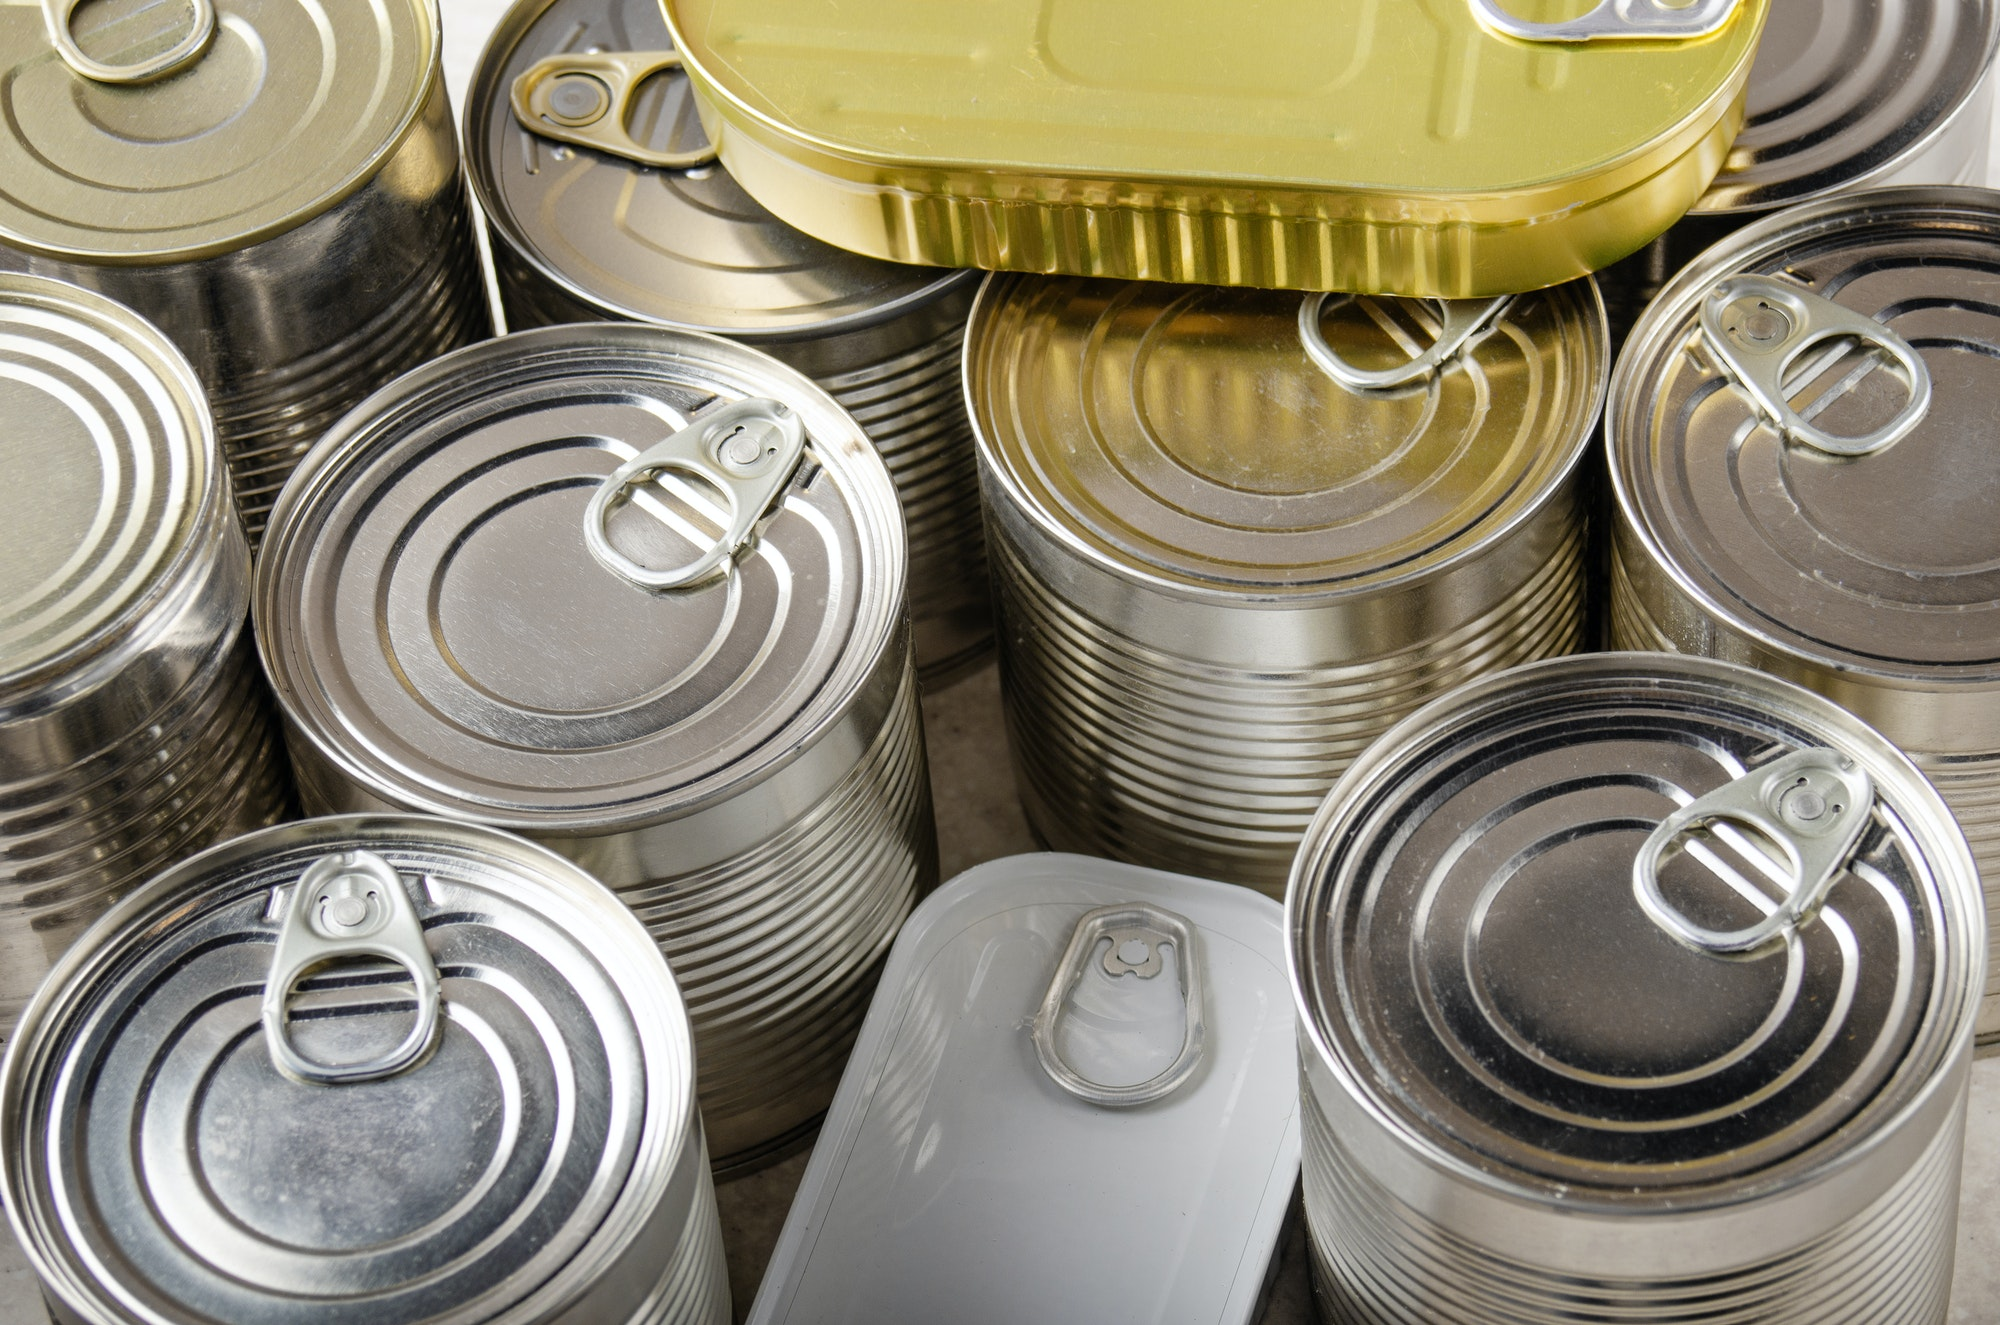 canned foods in tin cans on kitchen table